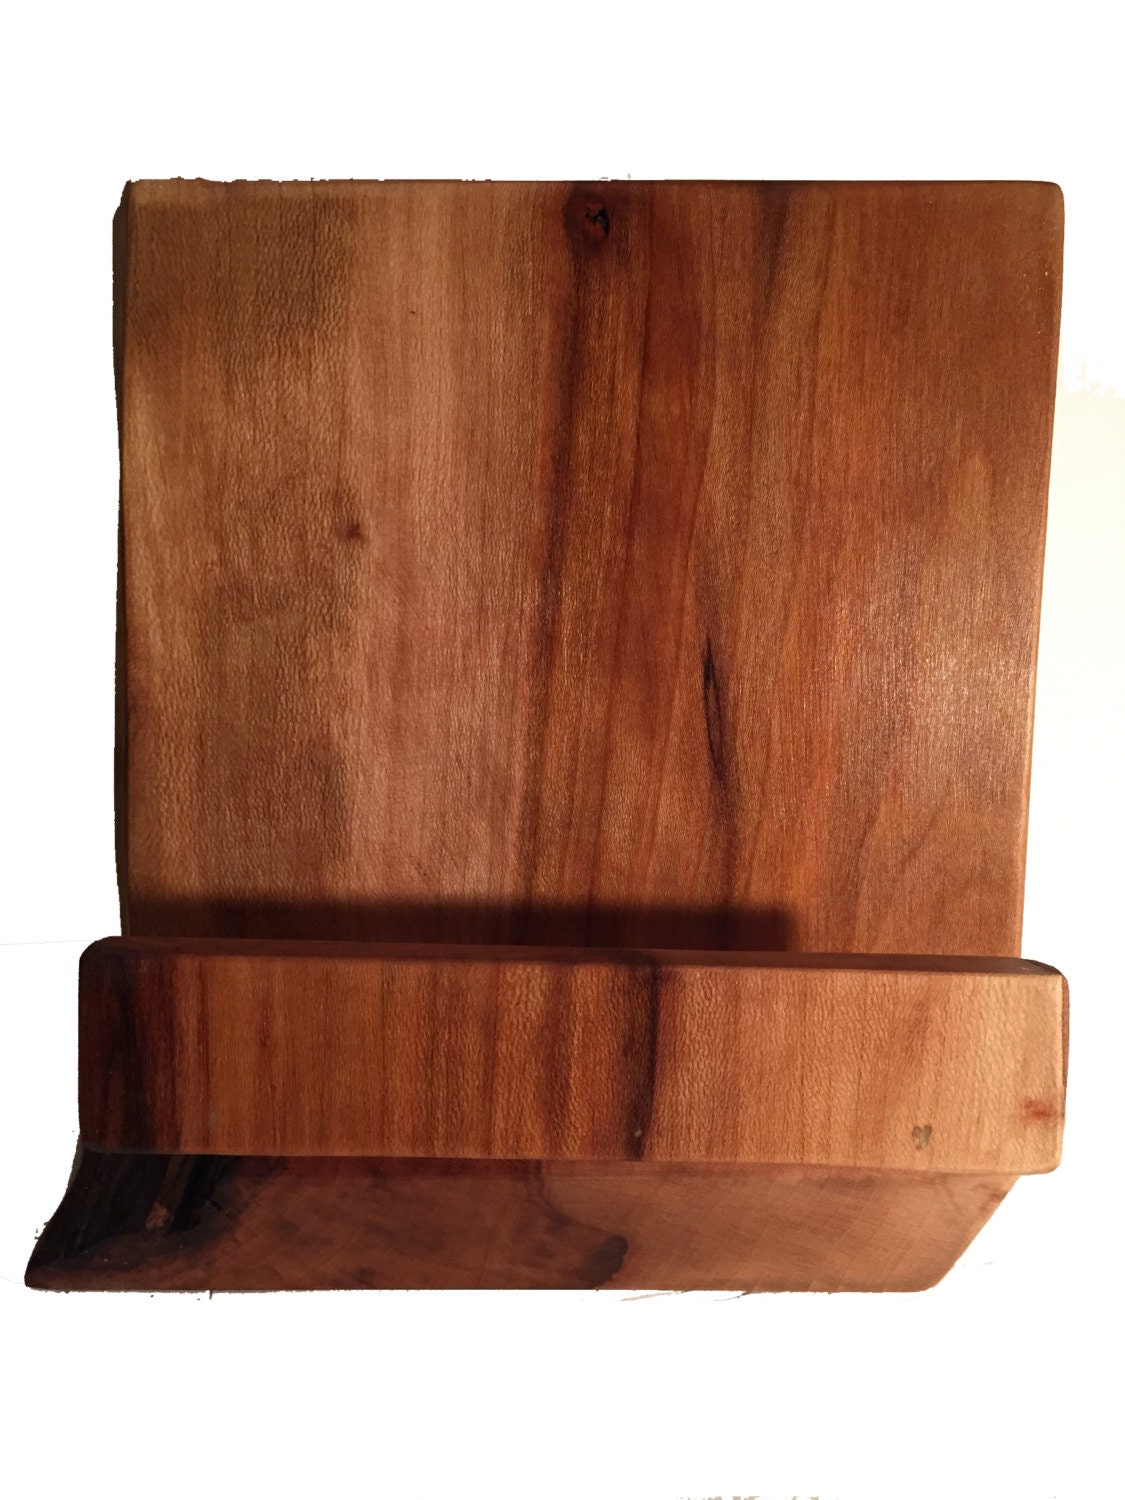 Cookbook Stand made from Reclaimed Wood, Recipe Storage, Cookbook Holder - Cookbook Stand Made From Reclaimed Wood, Recipe Storage, Cookbook